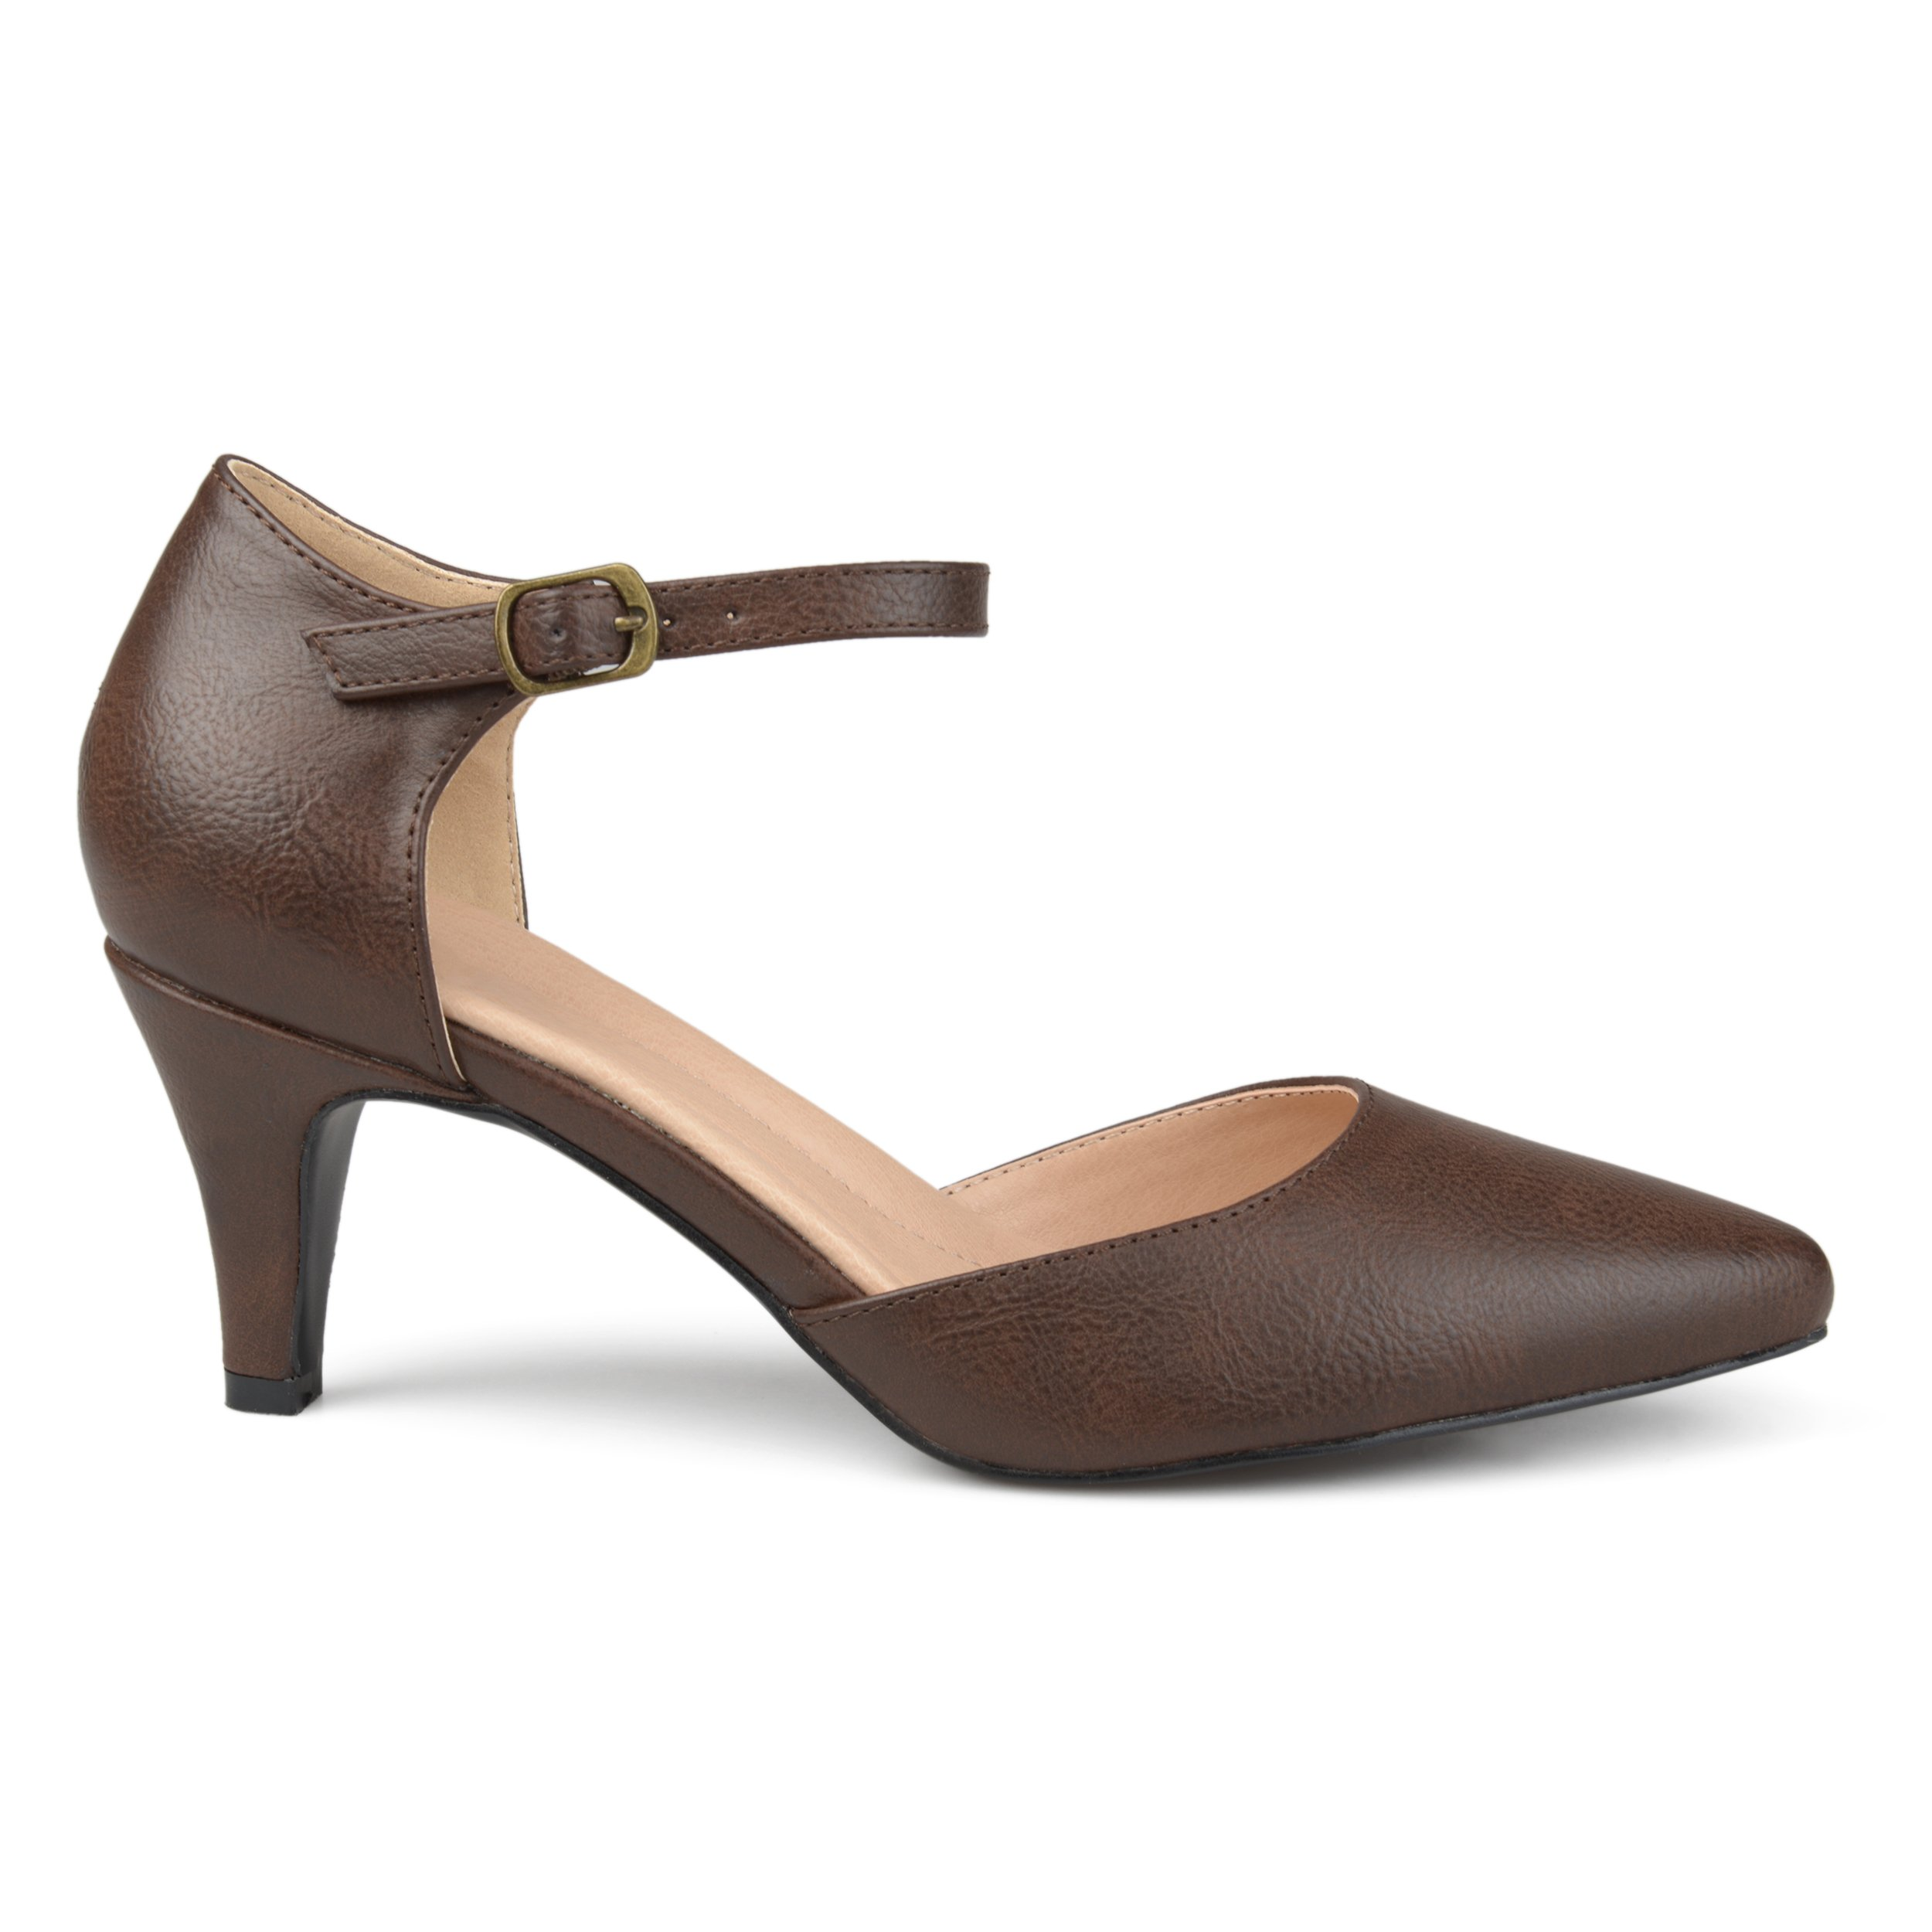 Brinley Co. Womens Faux Leather Comfort Sole D'Orsay Ankle Strap Almond Toe Heels Brown, 9 Regular US